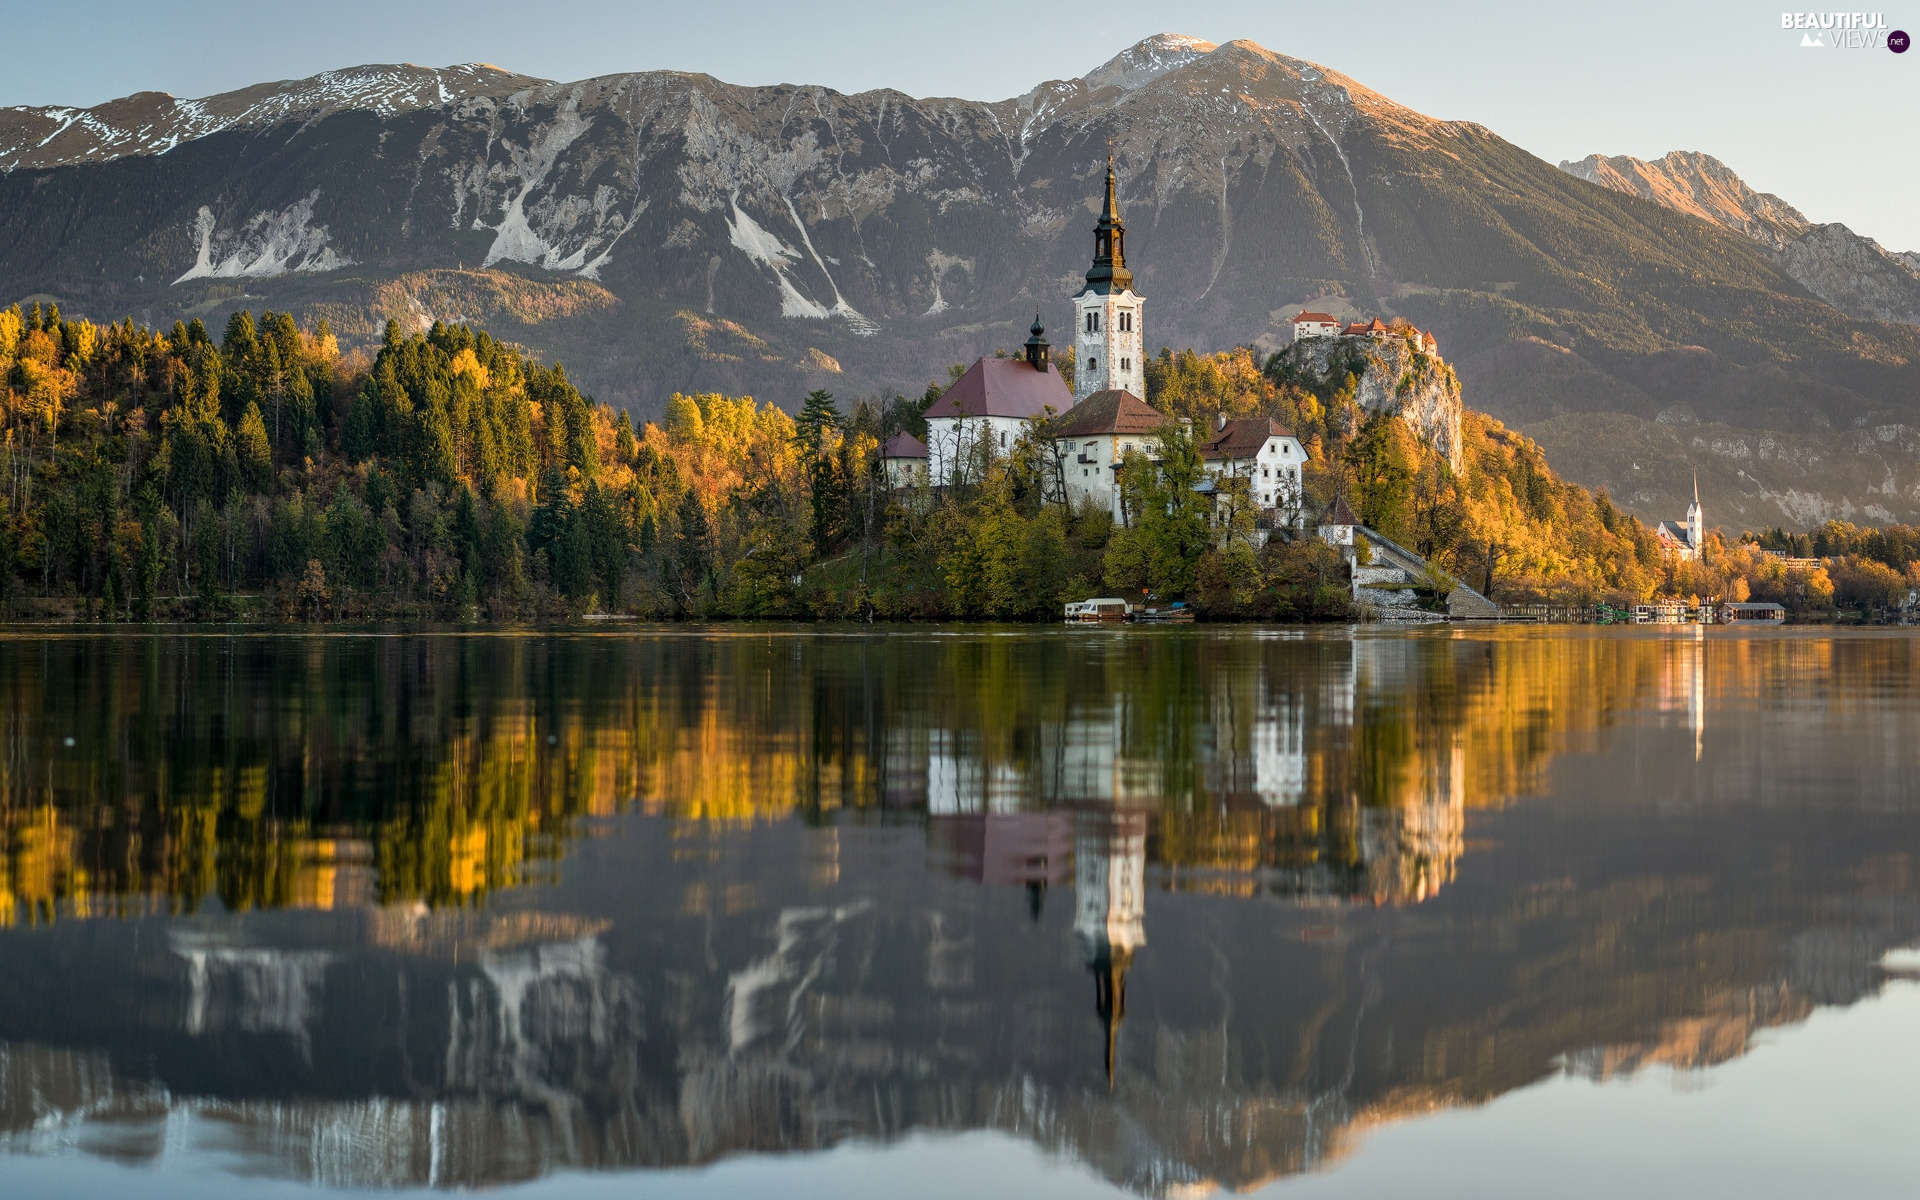 Mountains, autumn, Lake Bled, Island, viewes, Slovenia, reflection, trees, Church of the Assumption of the Blessed Virgin Mary